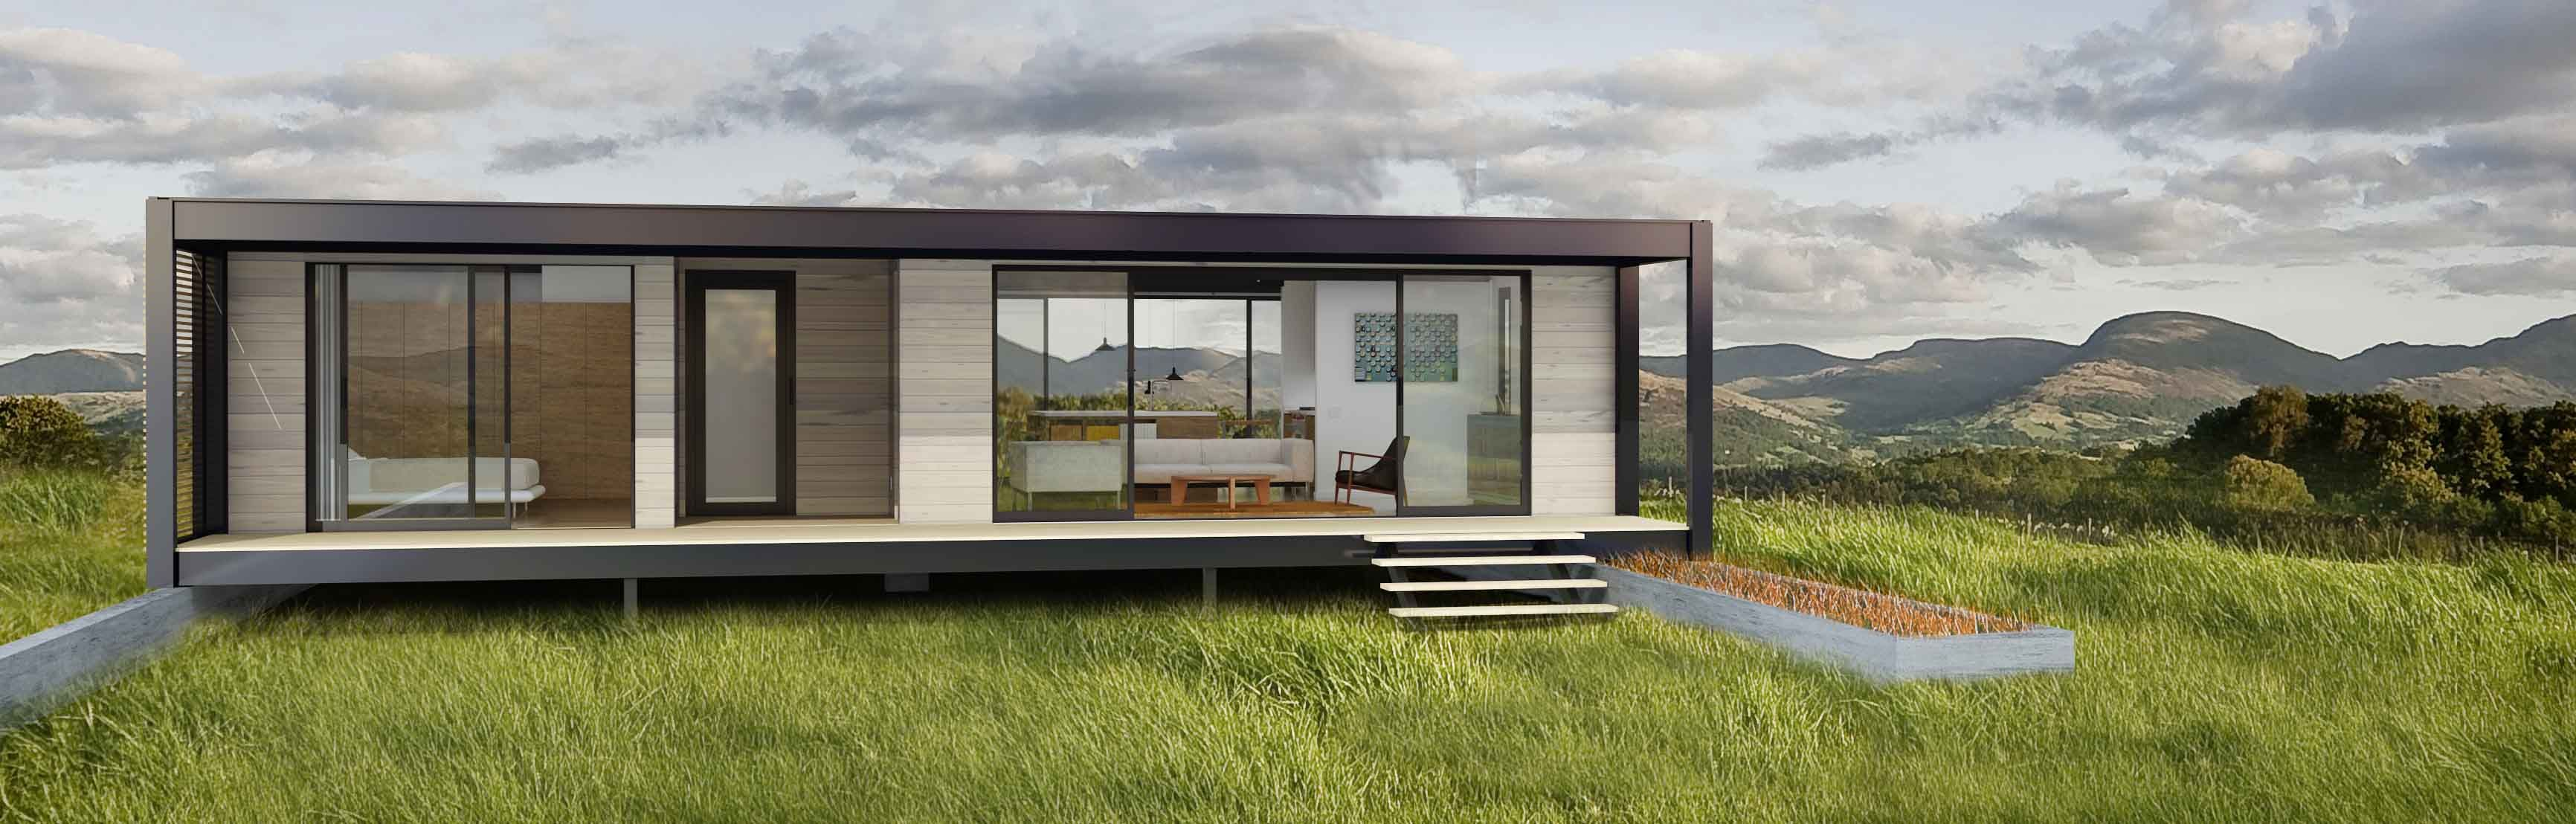 The Excellent Prefab Homes Affordable Awesome Ideas For